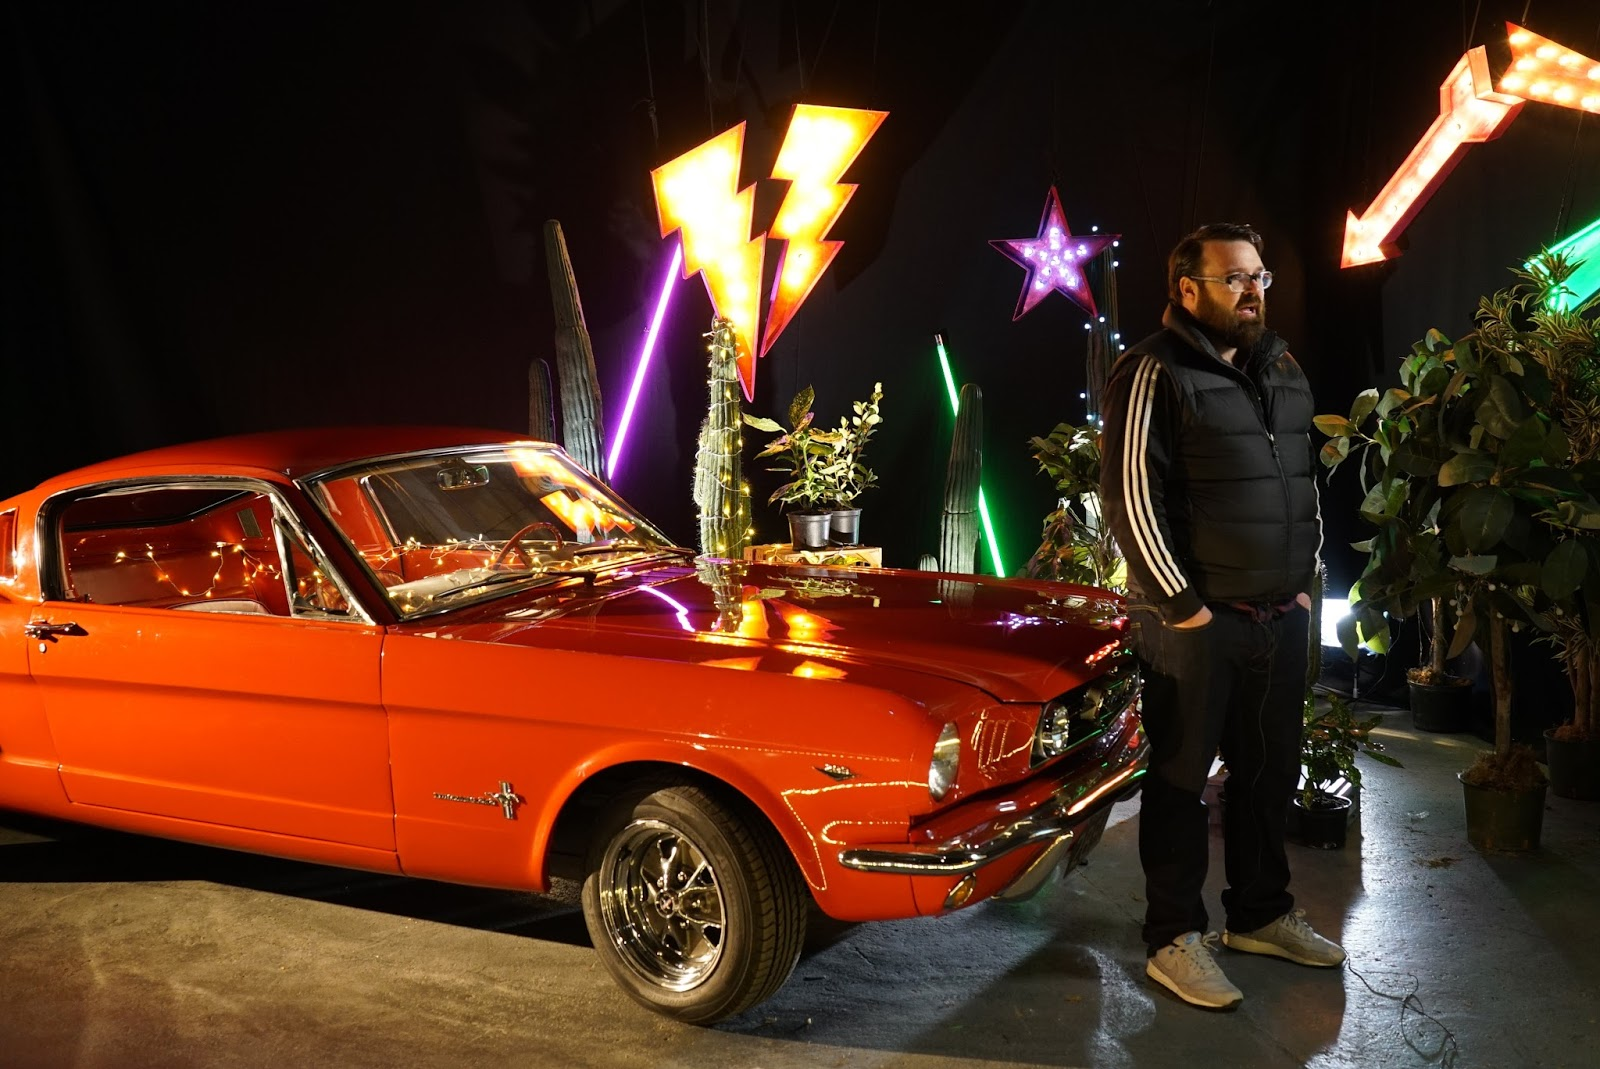 tinder mustang3 'Ραντεβού στα Τυφλά' με μία Ford Mustang μέσα από την εφαρμογή Tinder